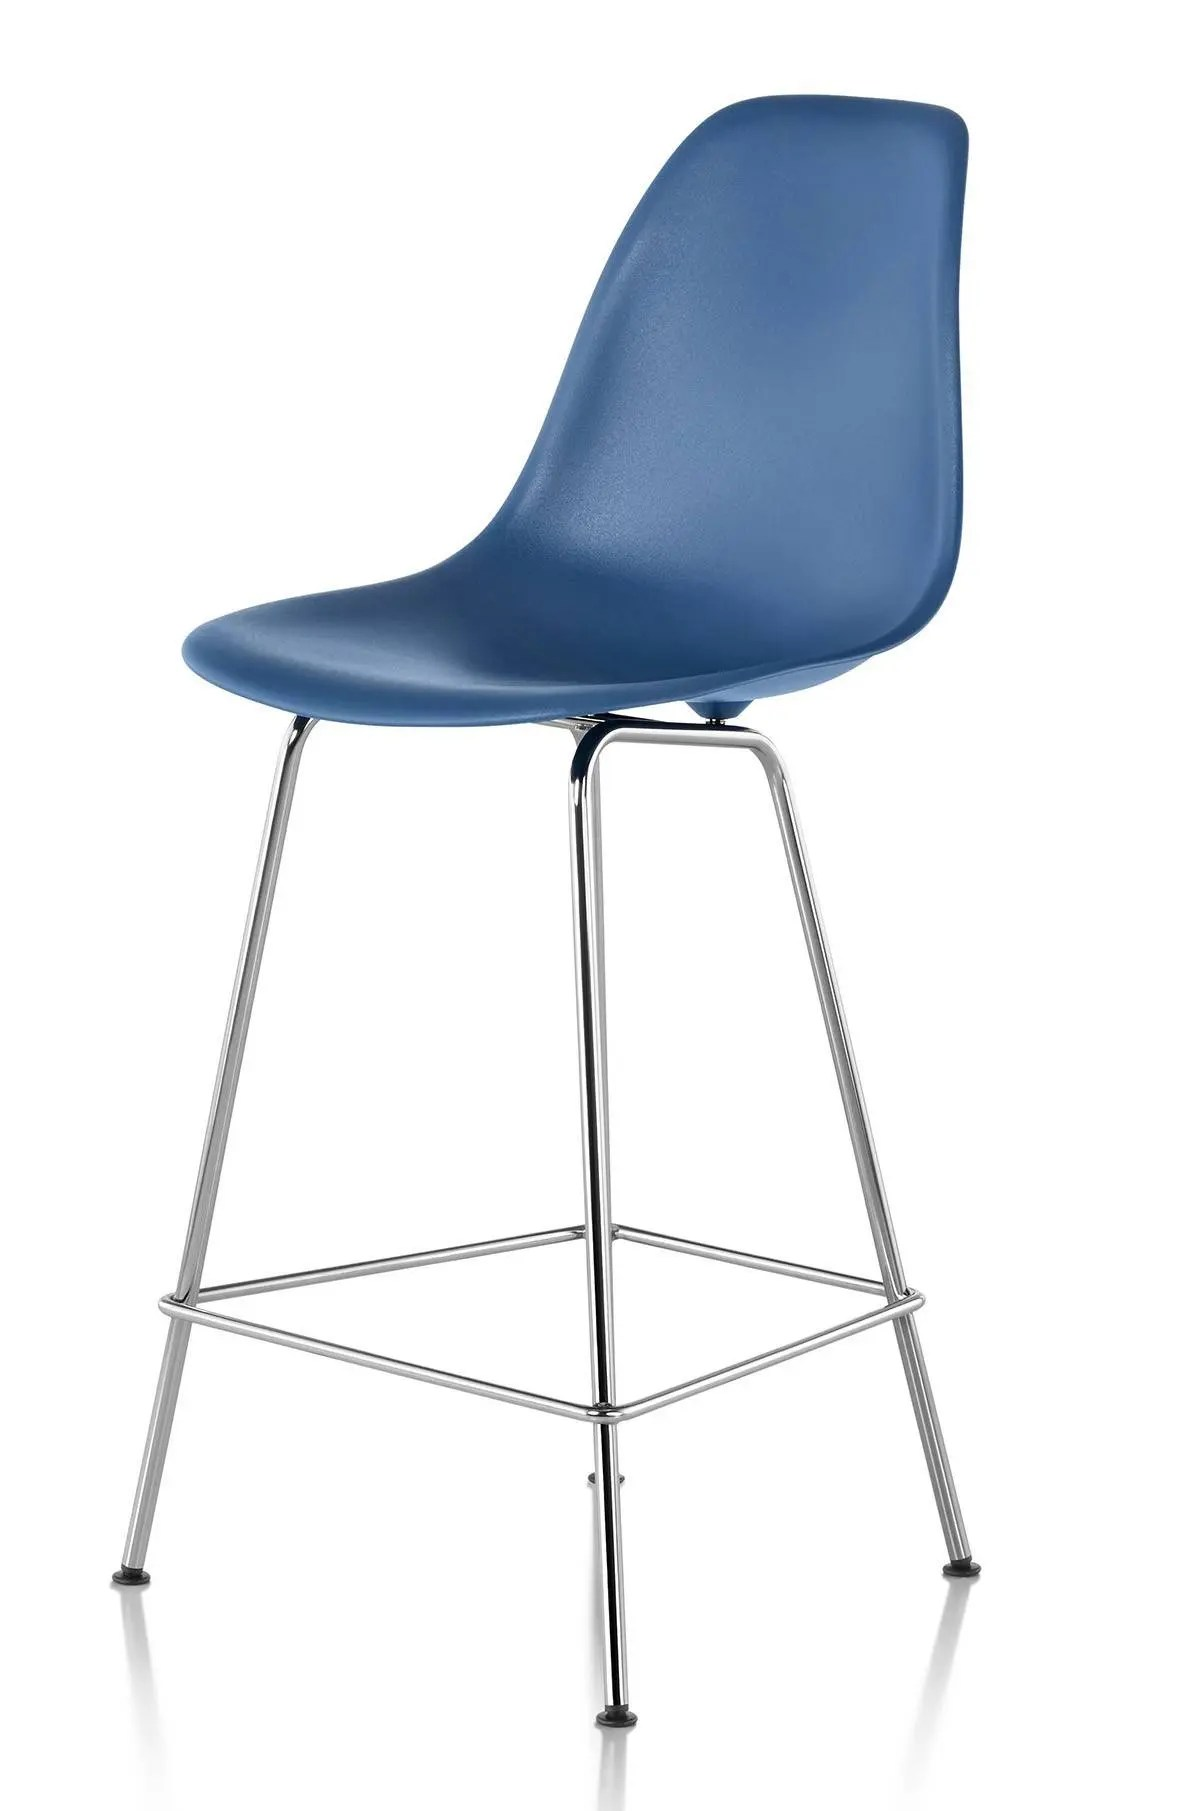 herman miller used office chairs chair ergonomic eames® molded plastic stool - gr shop canada